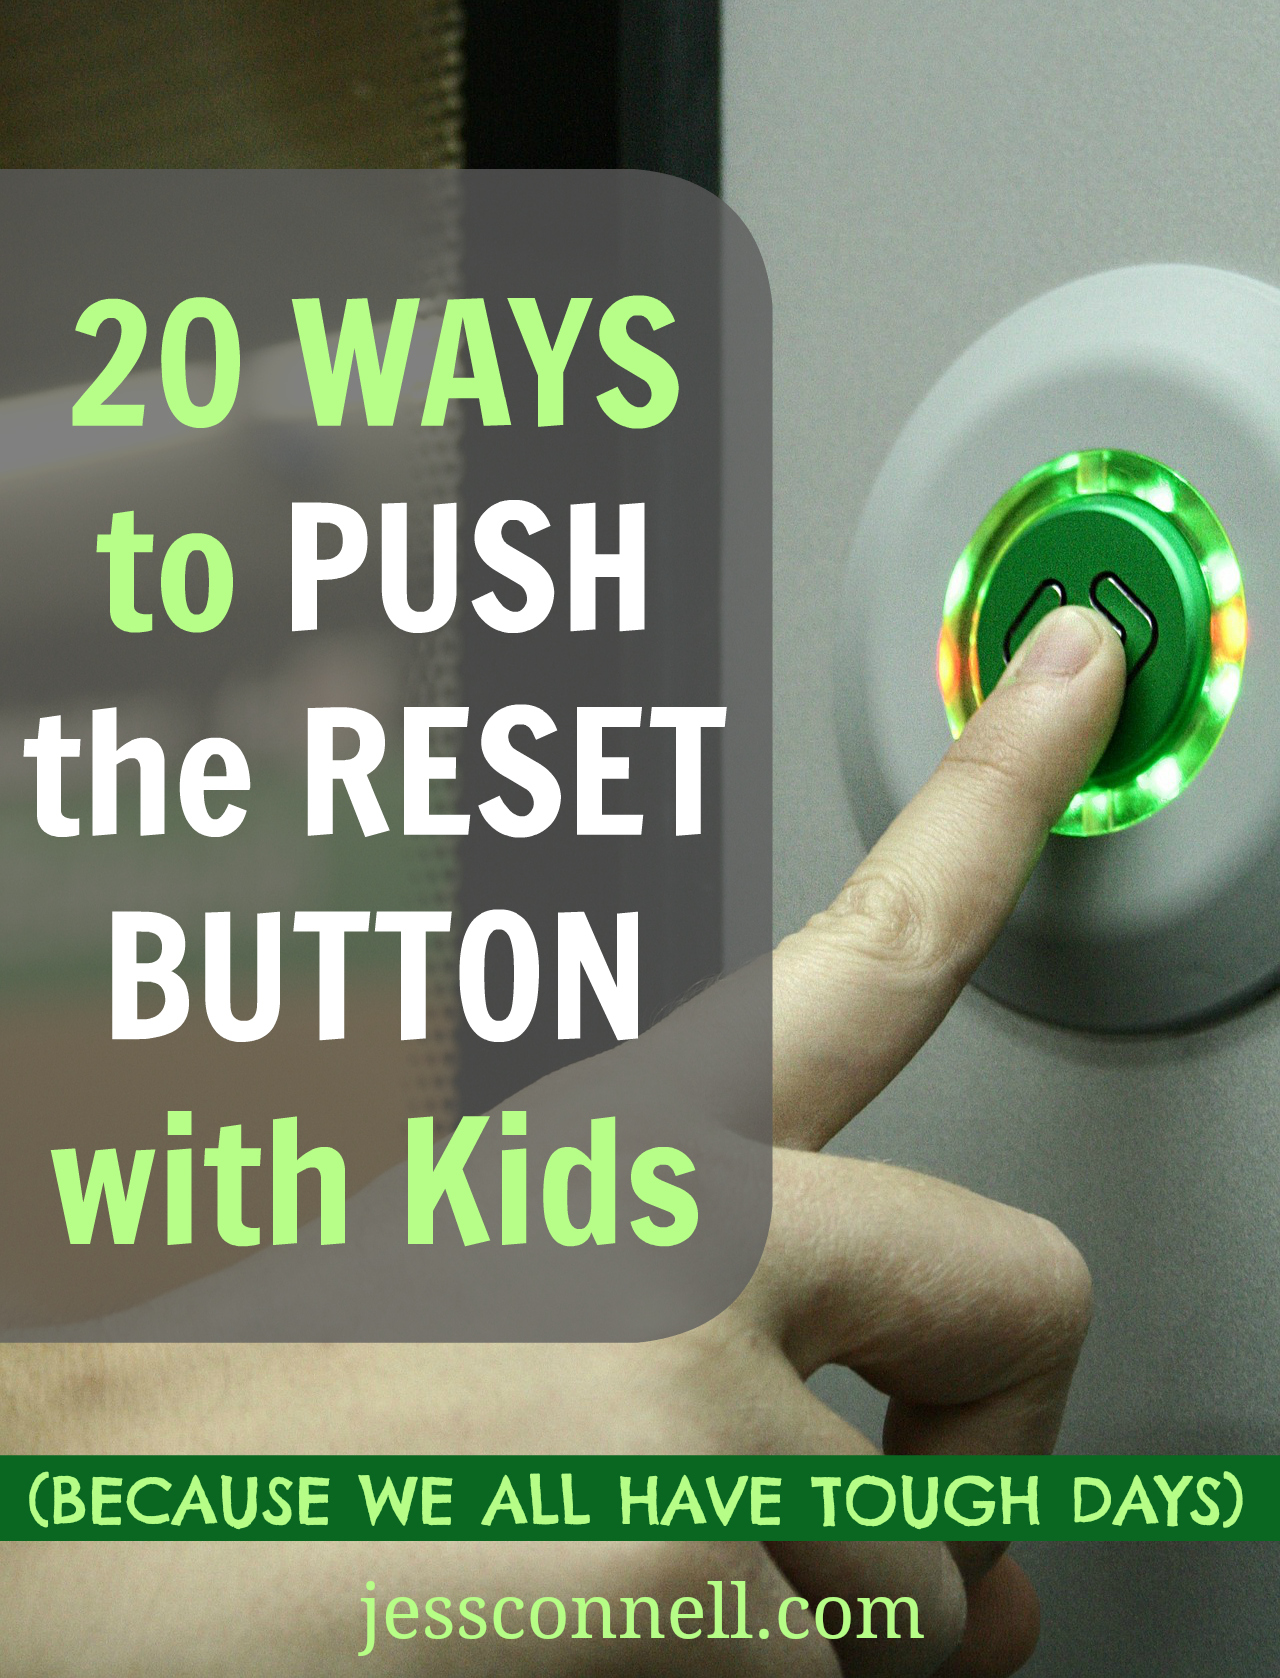 20 Ways to PUSH THE RESET BUTTON With Kids // jessconnell.com